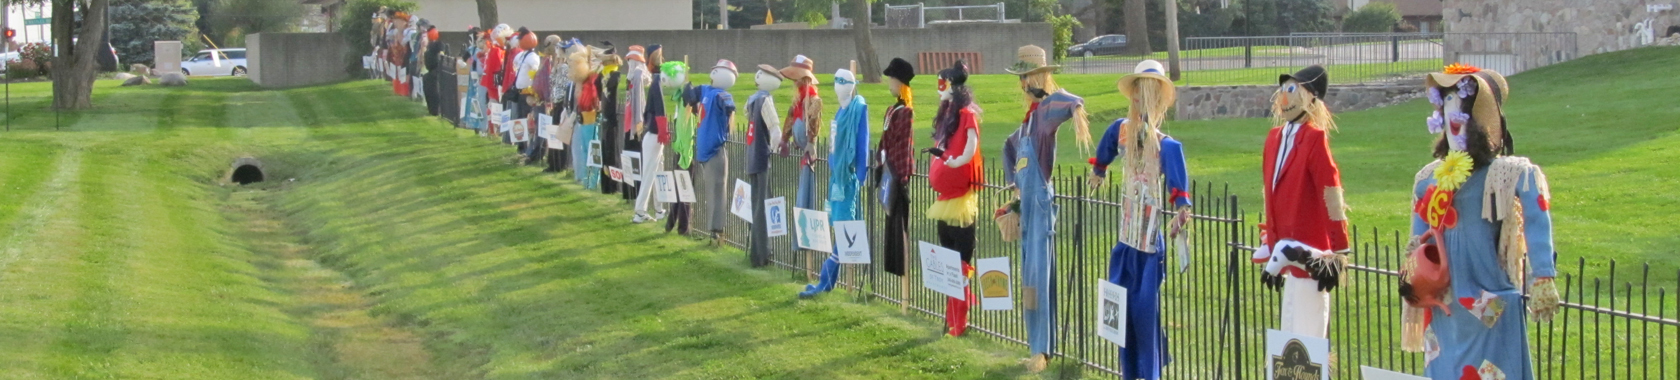 Scarecrow Row 2016 Gallery